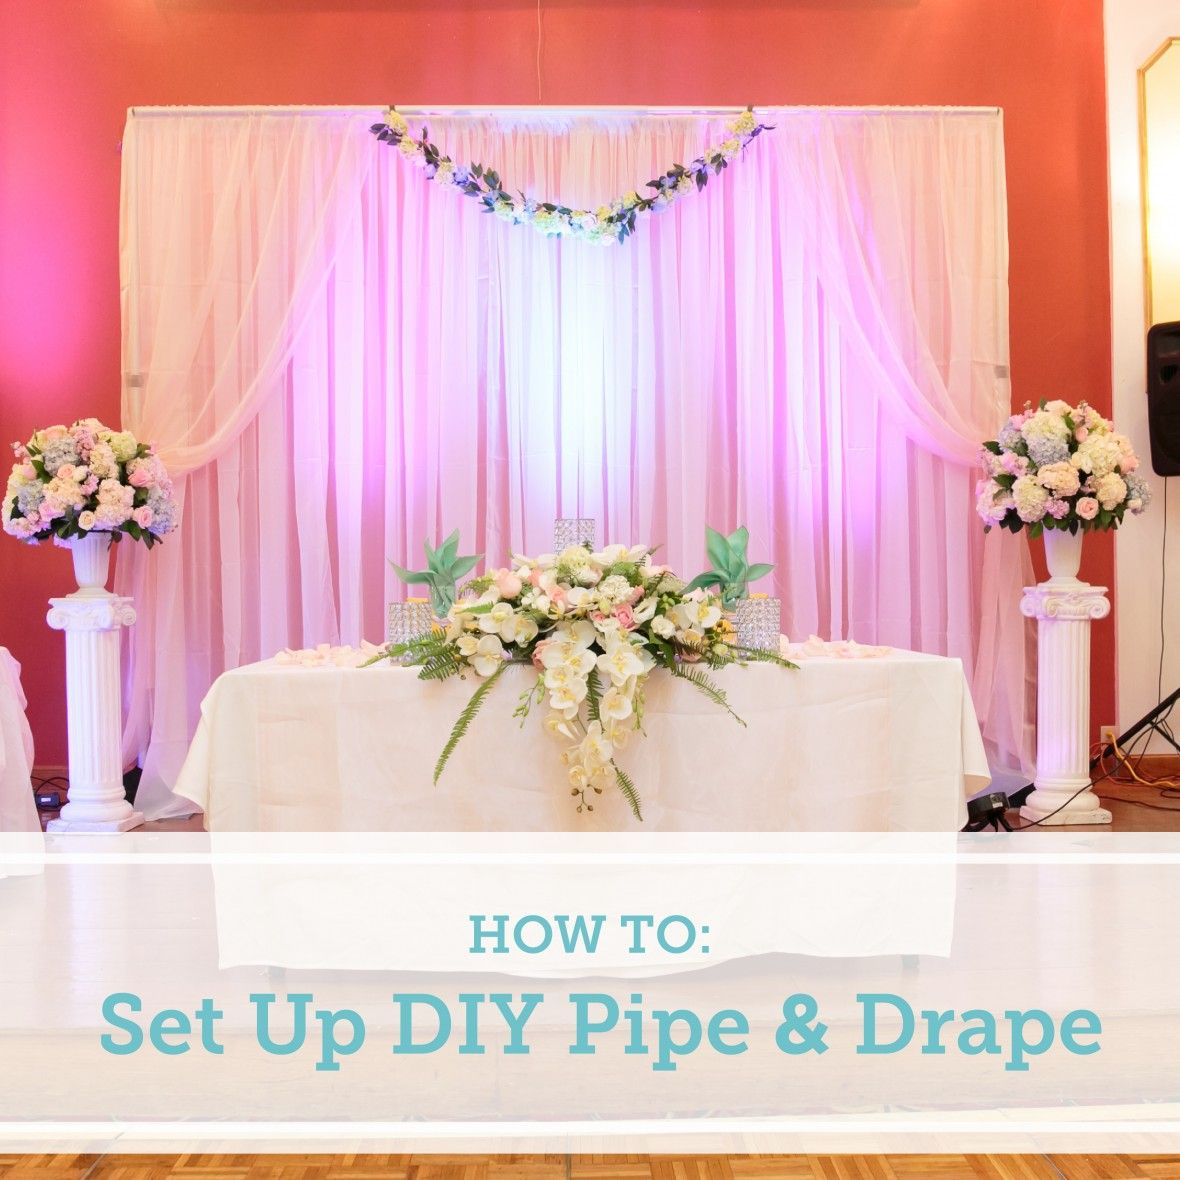 ll drape droop they rods and note as pvc drapes ft pin a the need piping important middle if longer from curtain support than using diy pipe to that make you